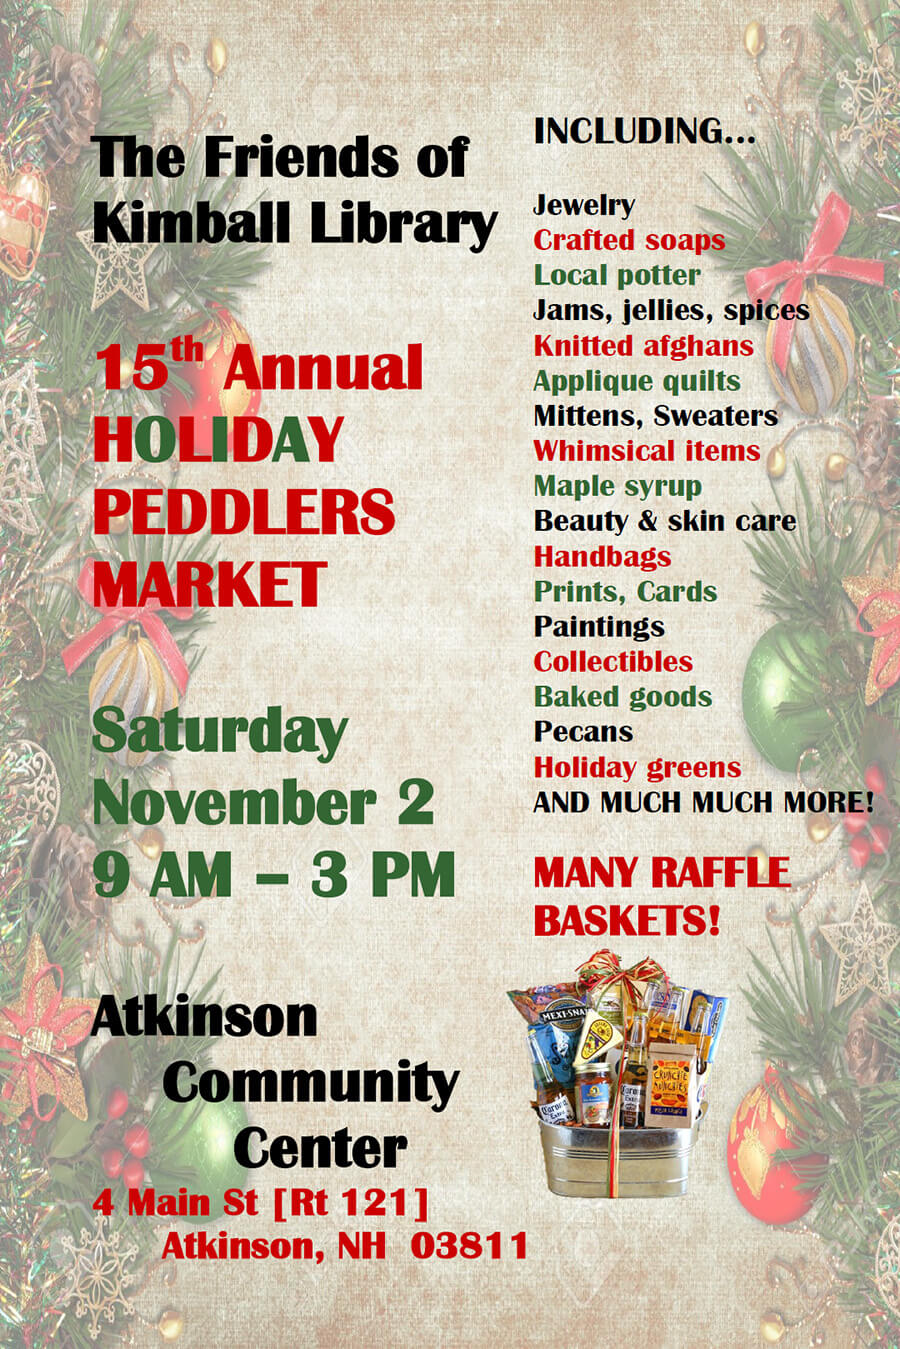 15th Annual Holiday Peddlers Market: November 2, 2019, 9am-3pm @Atkinson Community Center